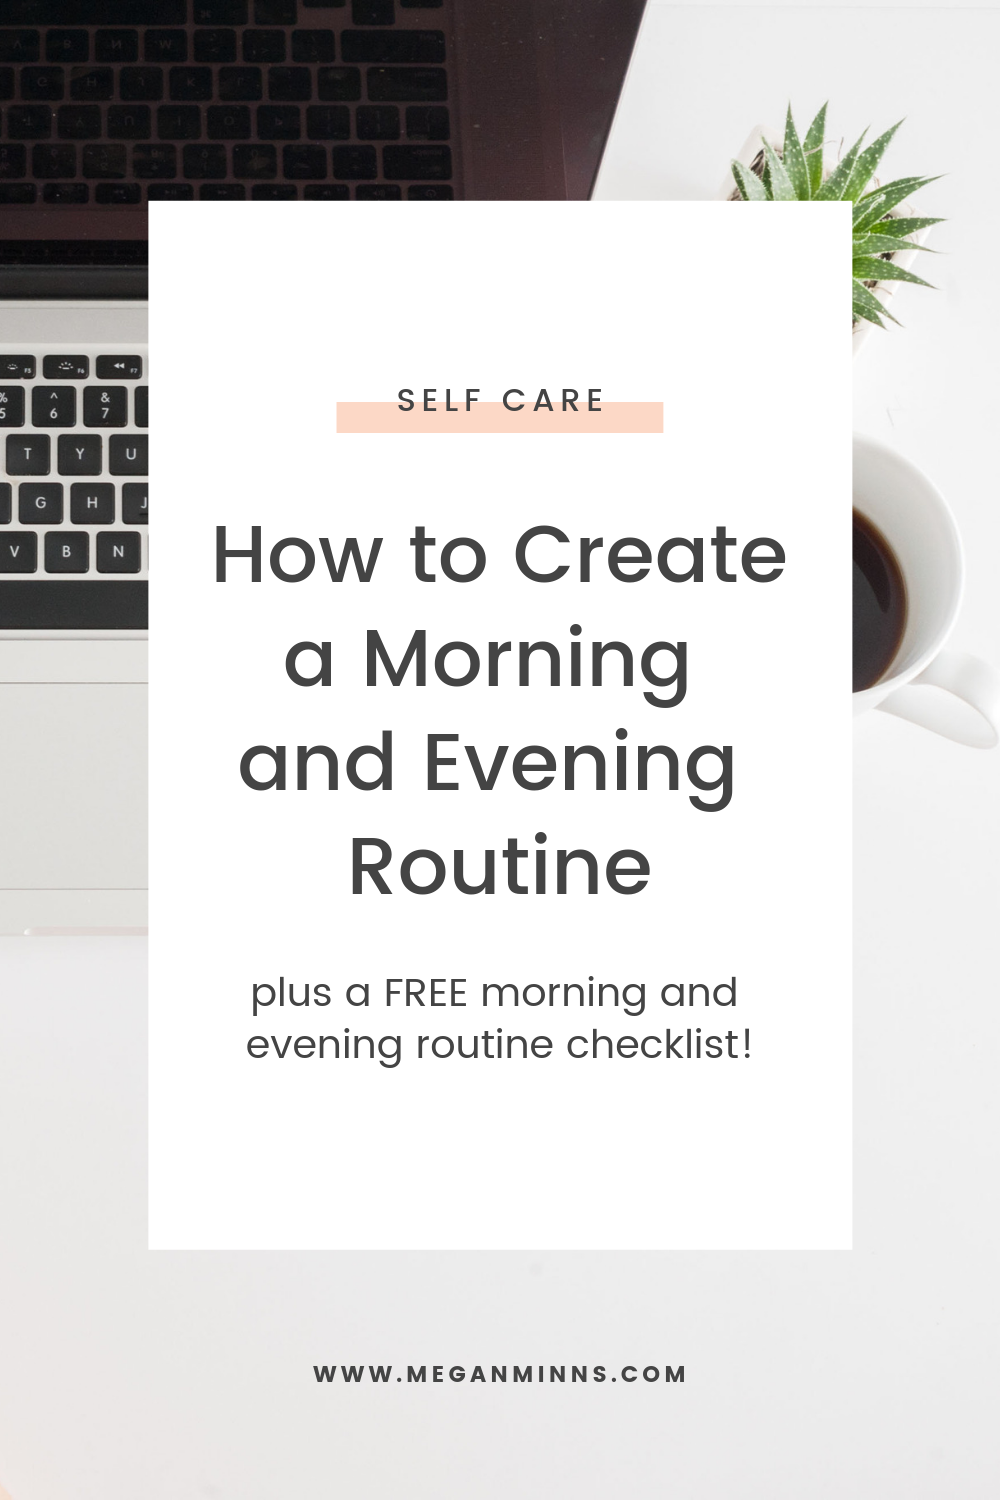 In this episode of The Productive Life, we're talking about how to create a morning and evening routine and stick to them! These routines are going to help you feel your best and be more productive during the day, too. LISTEN TO THE FULL EPISODE HERE ▶️ https://meganminns.com/blog/create-a-morning-and-evening-routine